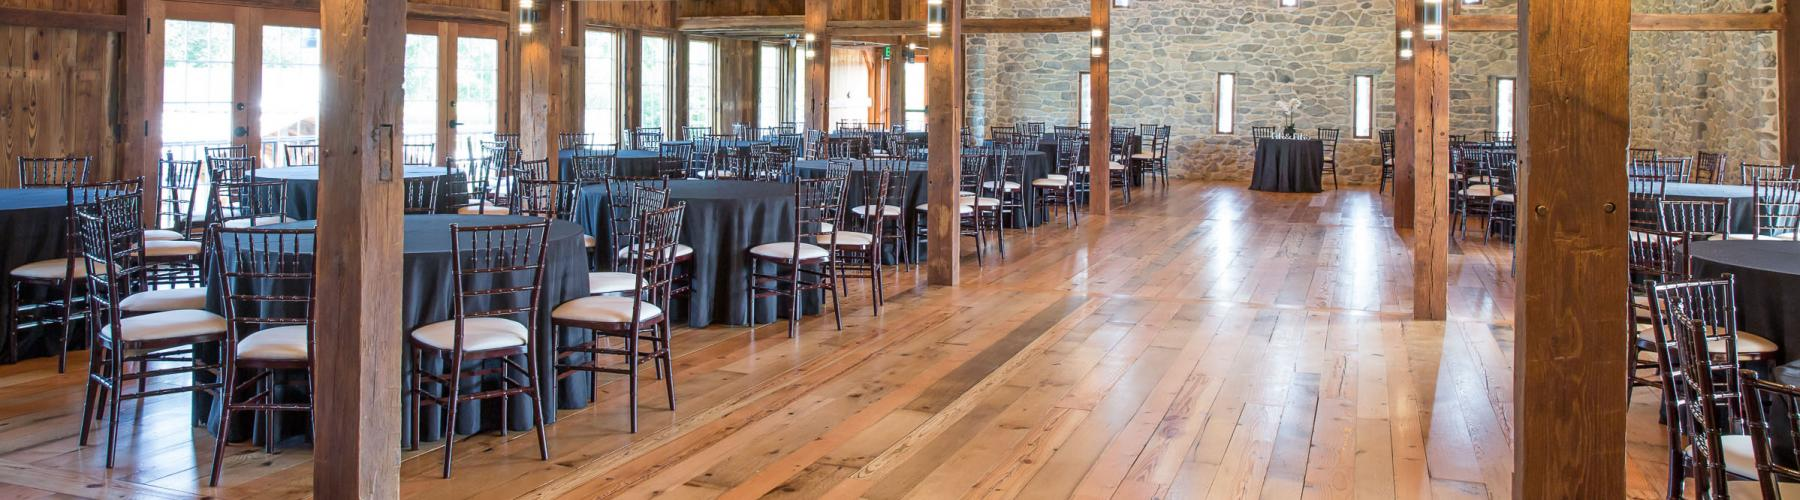 Interior of wedding and event barn